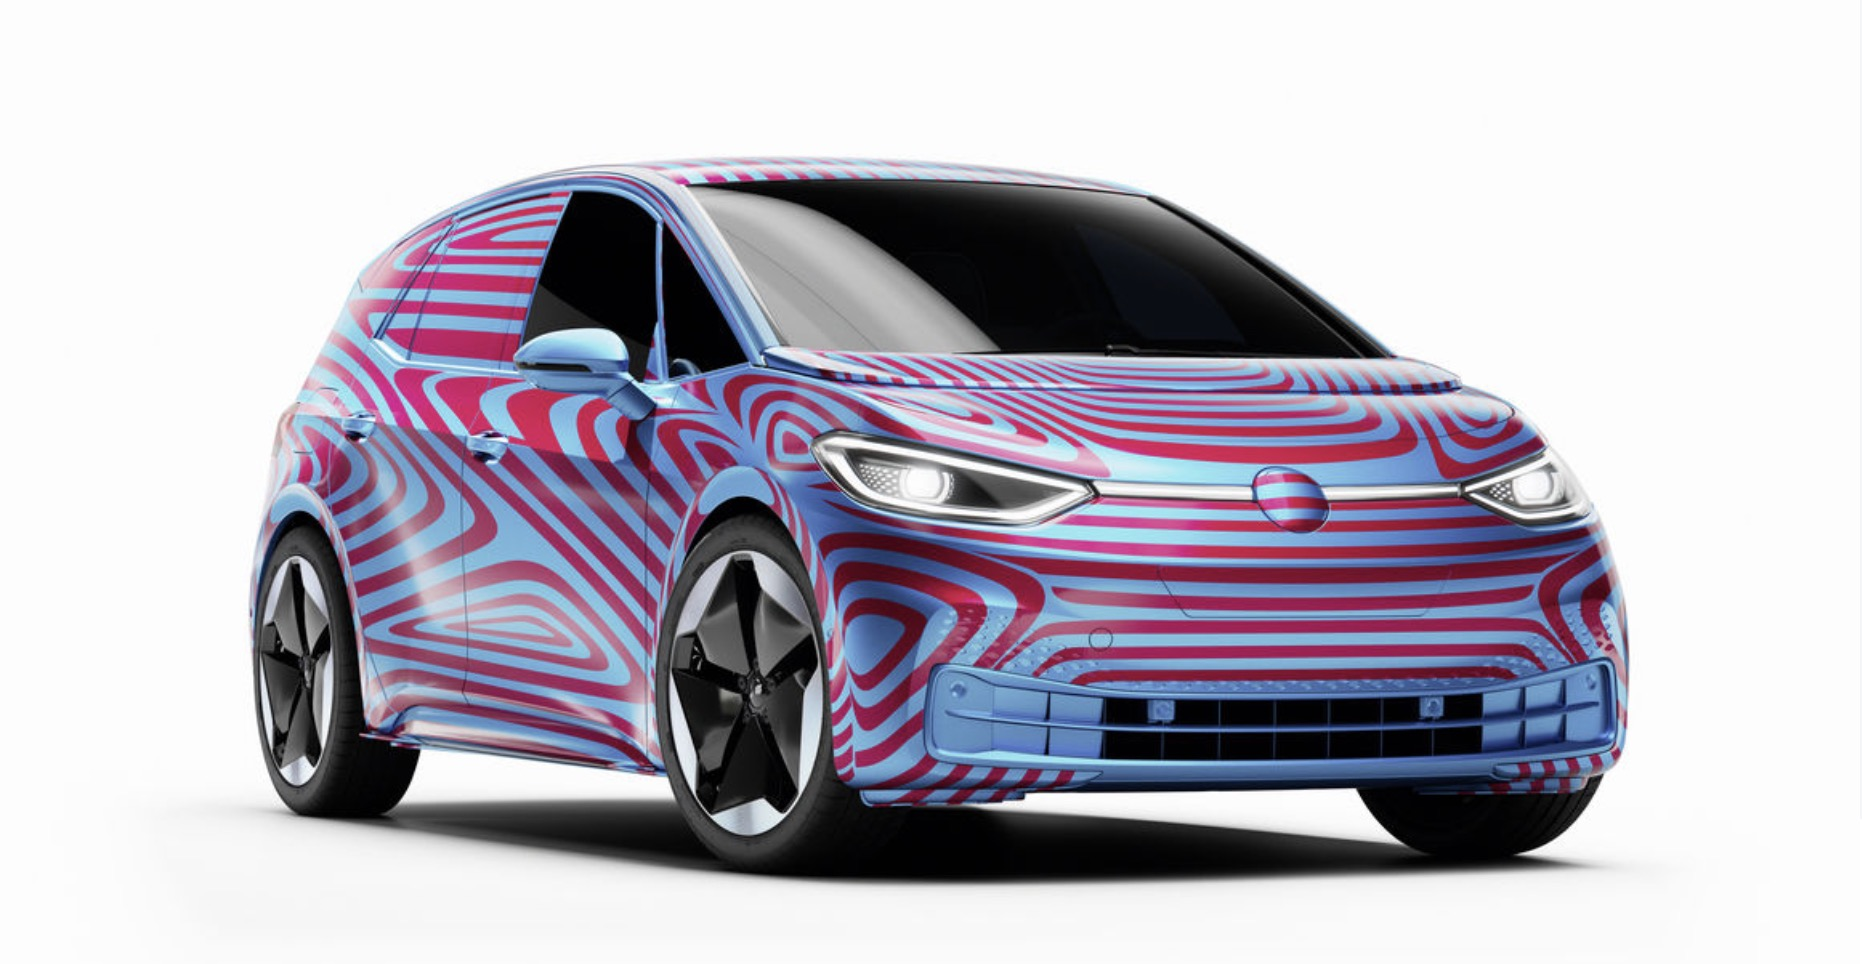 Vw S New Electric Hatchback Receives 10 000 Pre Orders In First 24 Hours Techcrunch